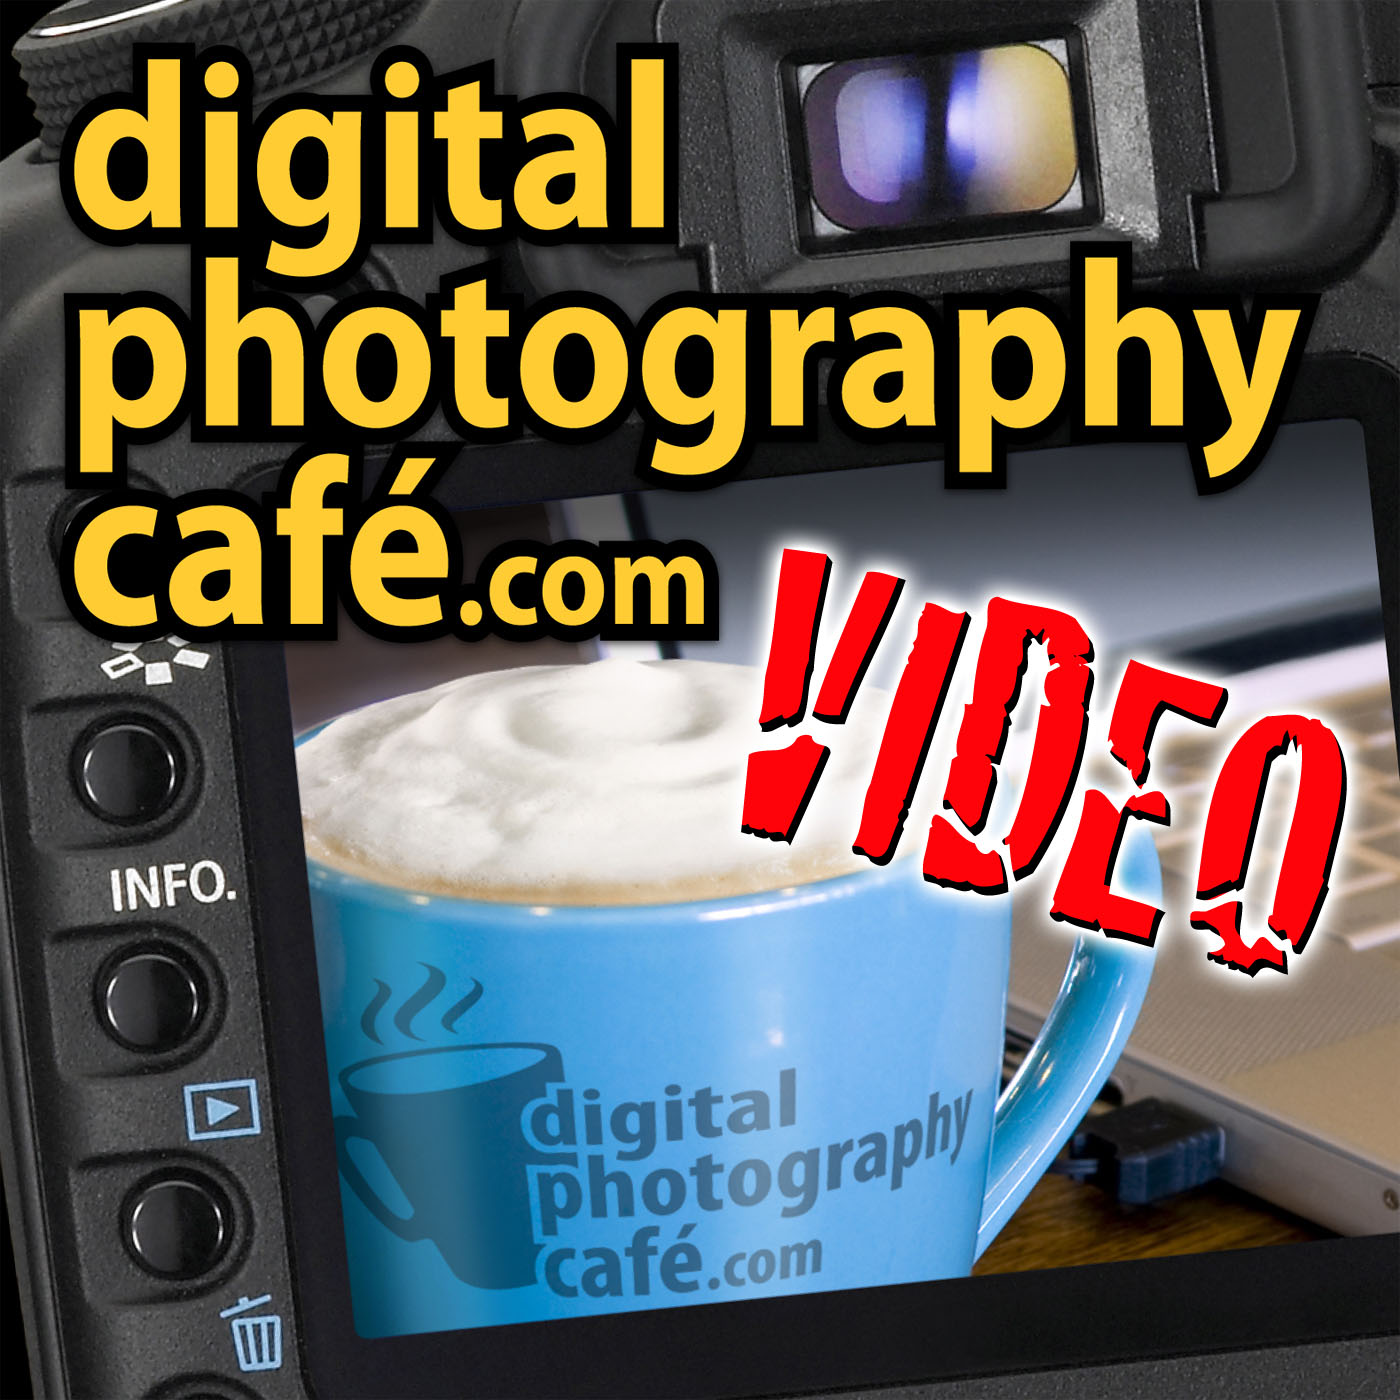 The Digital Photography Cafe Show | Serving up the hottest photography news and commentary